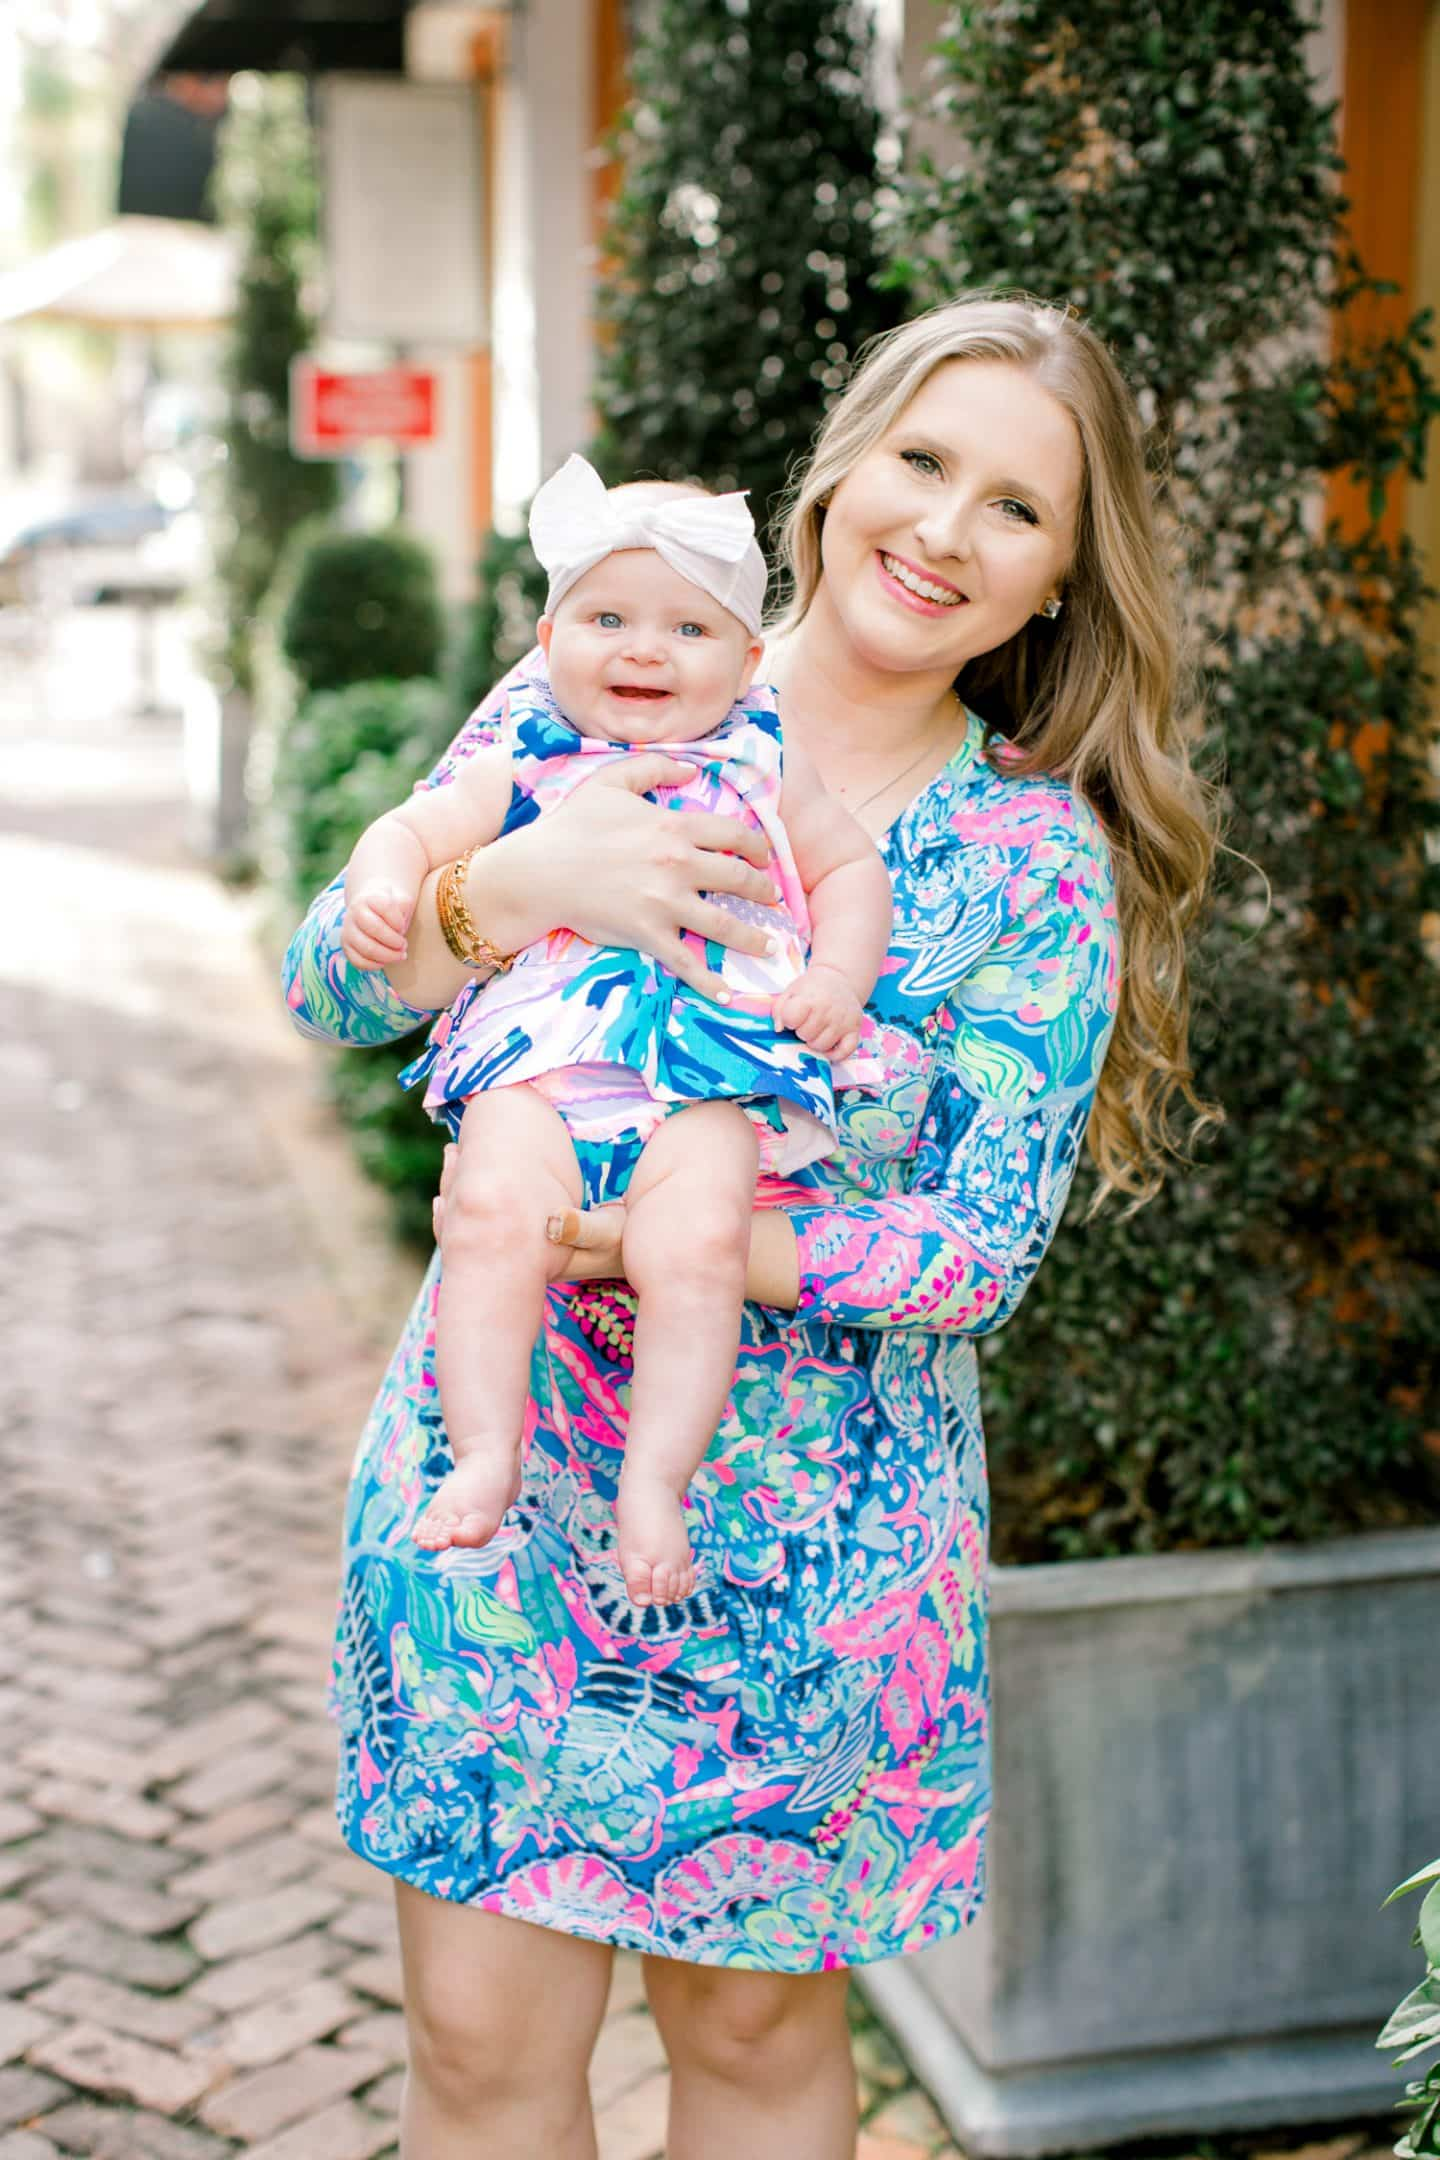 8dfef0489f Is there anything cuter than chubby cheeks and chunky legs in a Lilly  Pulitzer baby shift dress  I don t think so! Summer giggled and kicked her  legs in ...